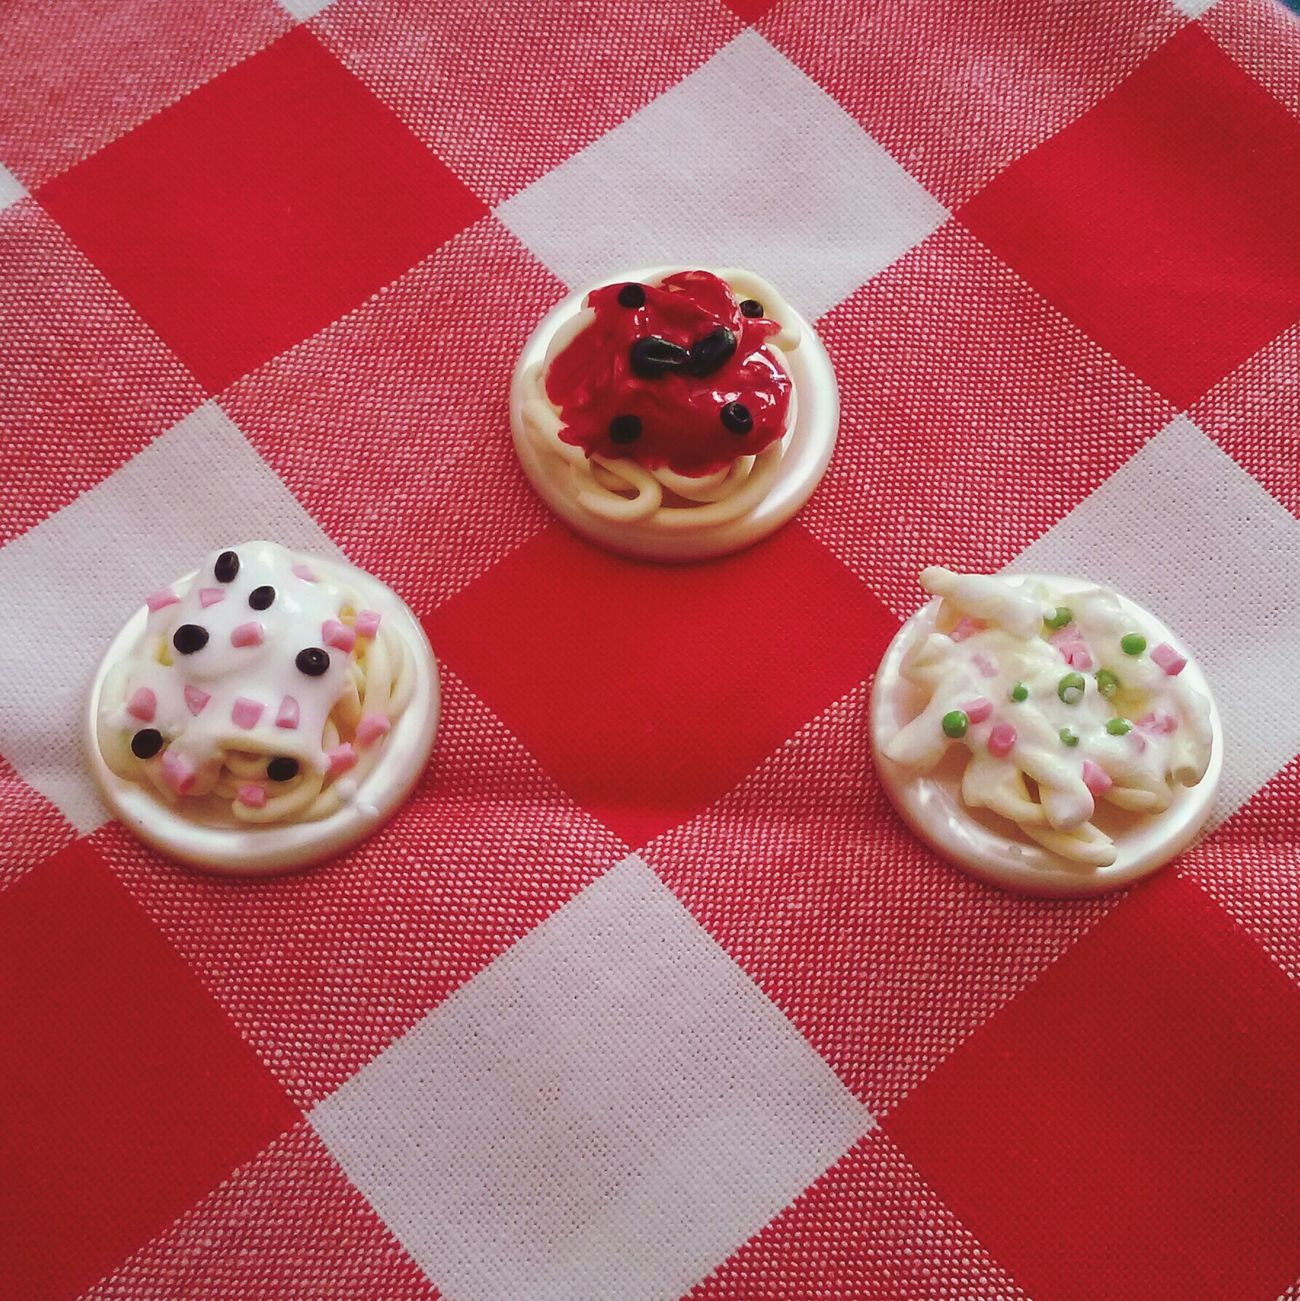 Handmade Jewellery Pasta Italianfood Fimo Polymerclay Fimolovers